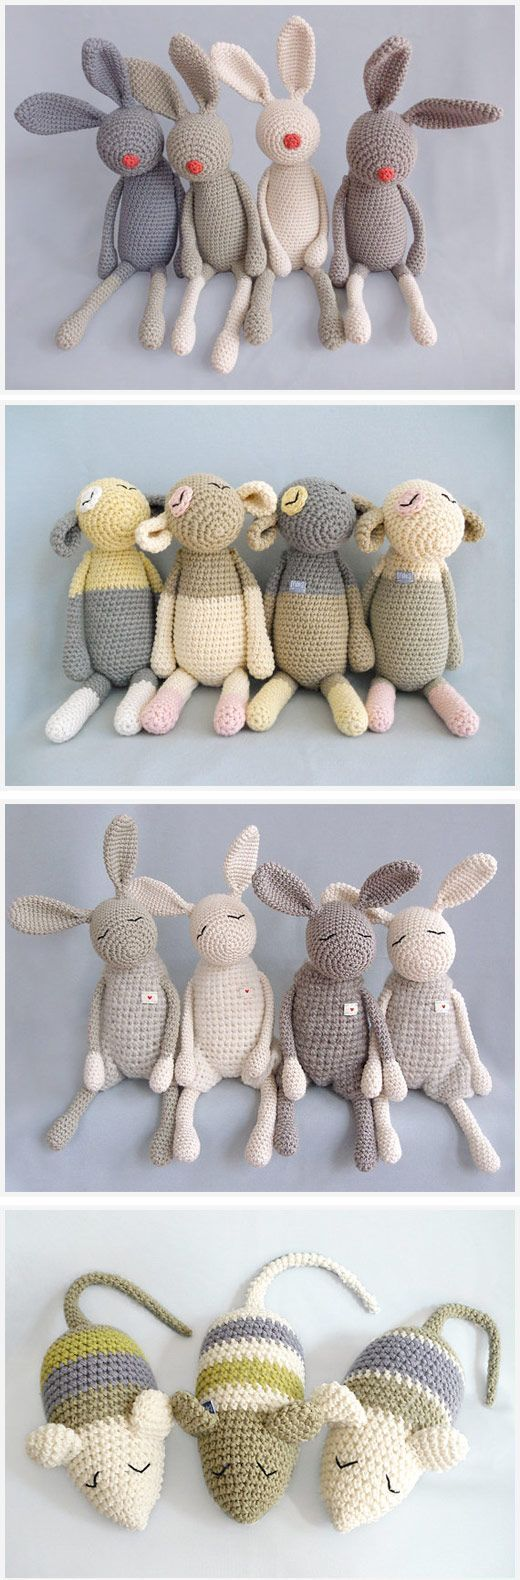 Hello and thank you for stopping by My Hobby Is Crochet Blog™️! Here you will find a collection of beautiful crochet patterns.